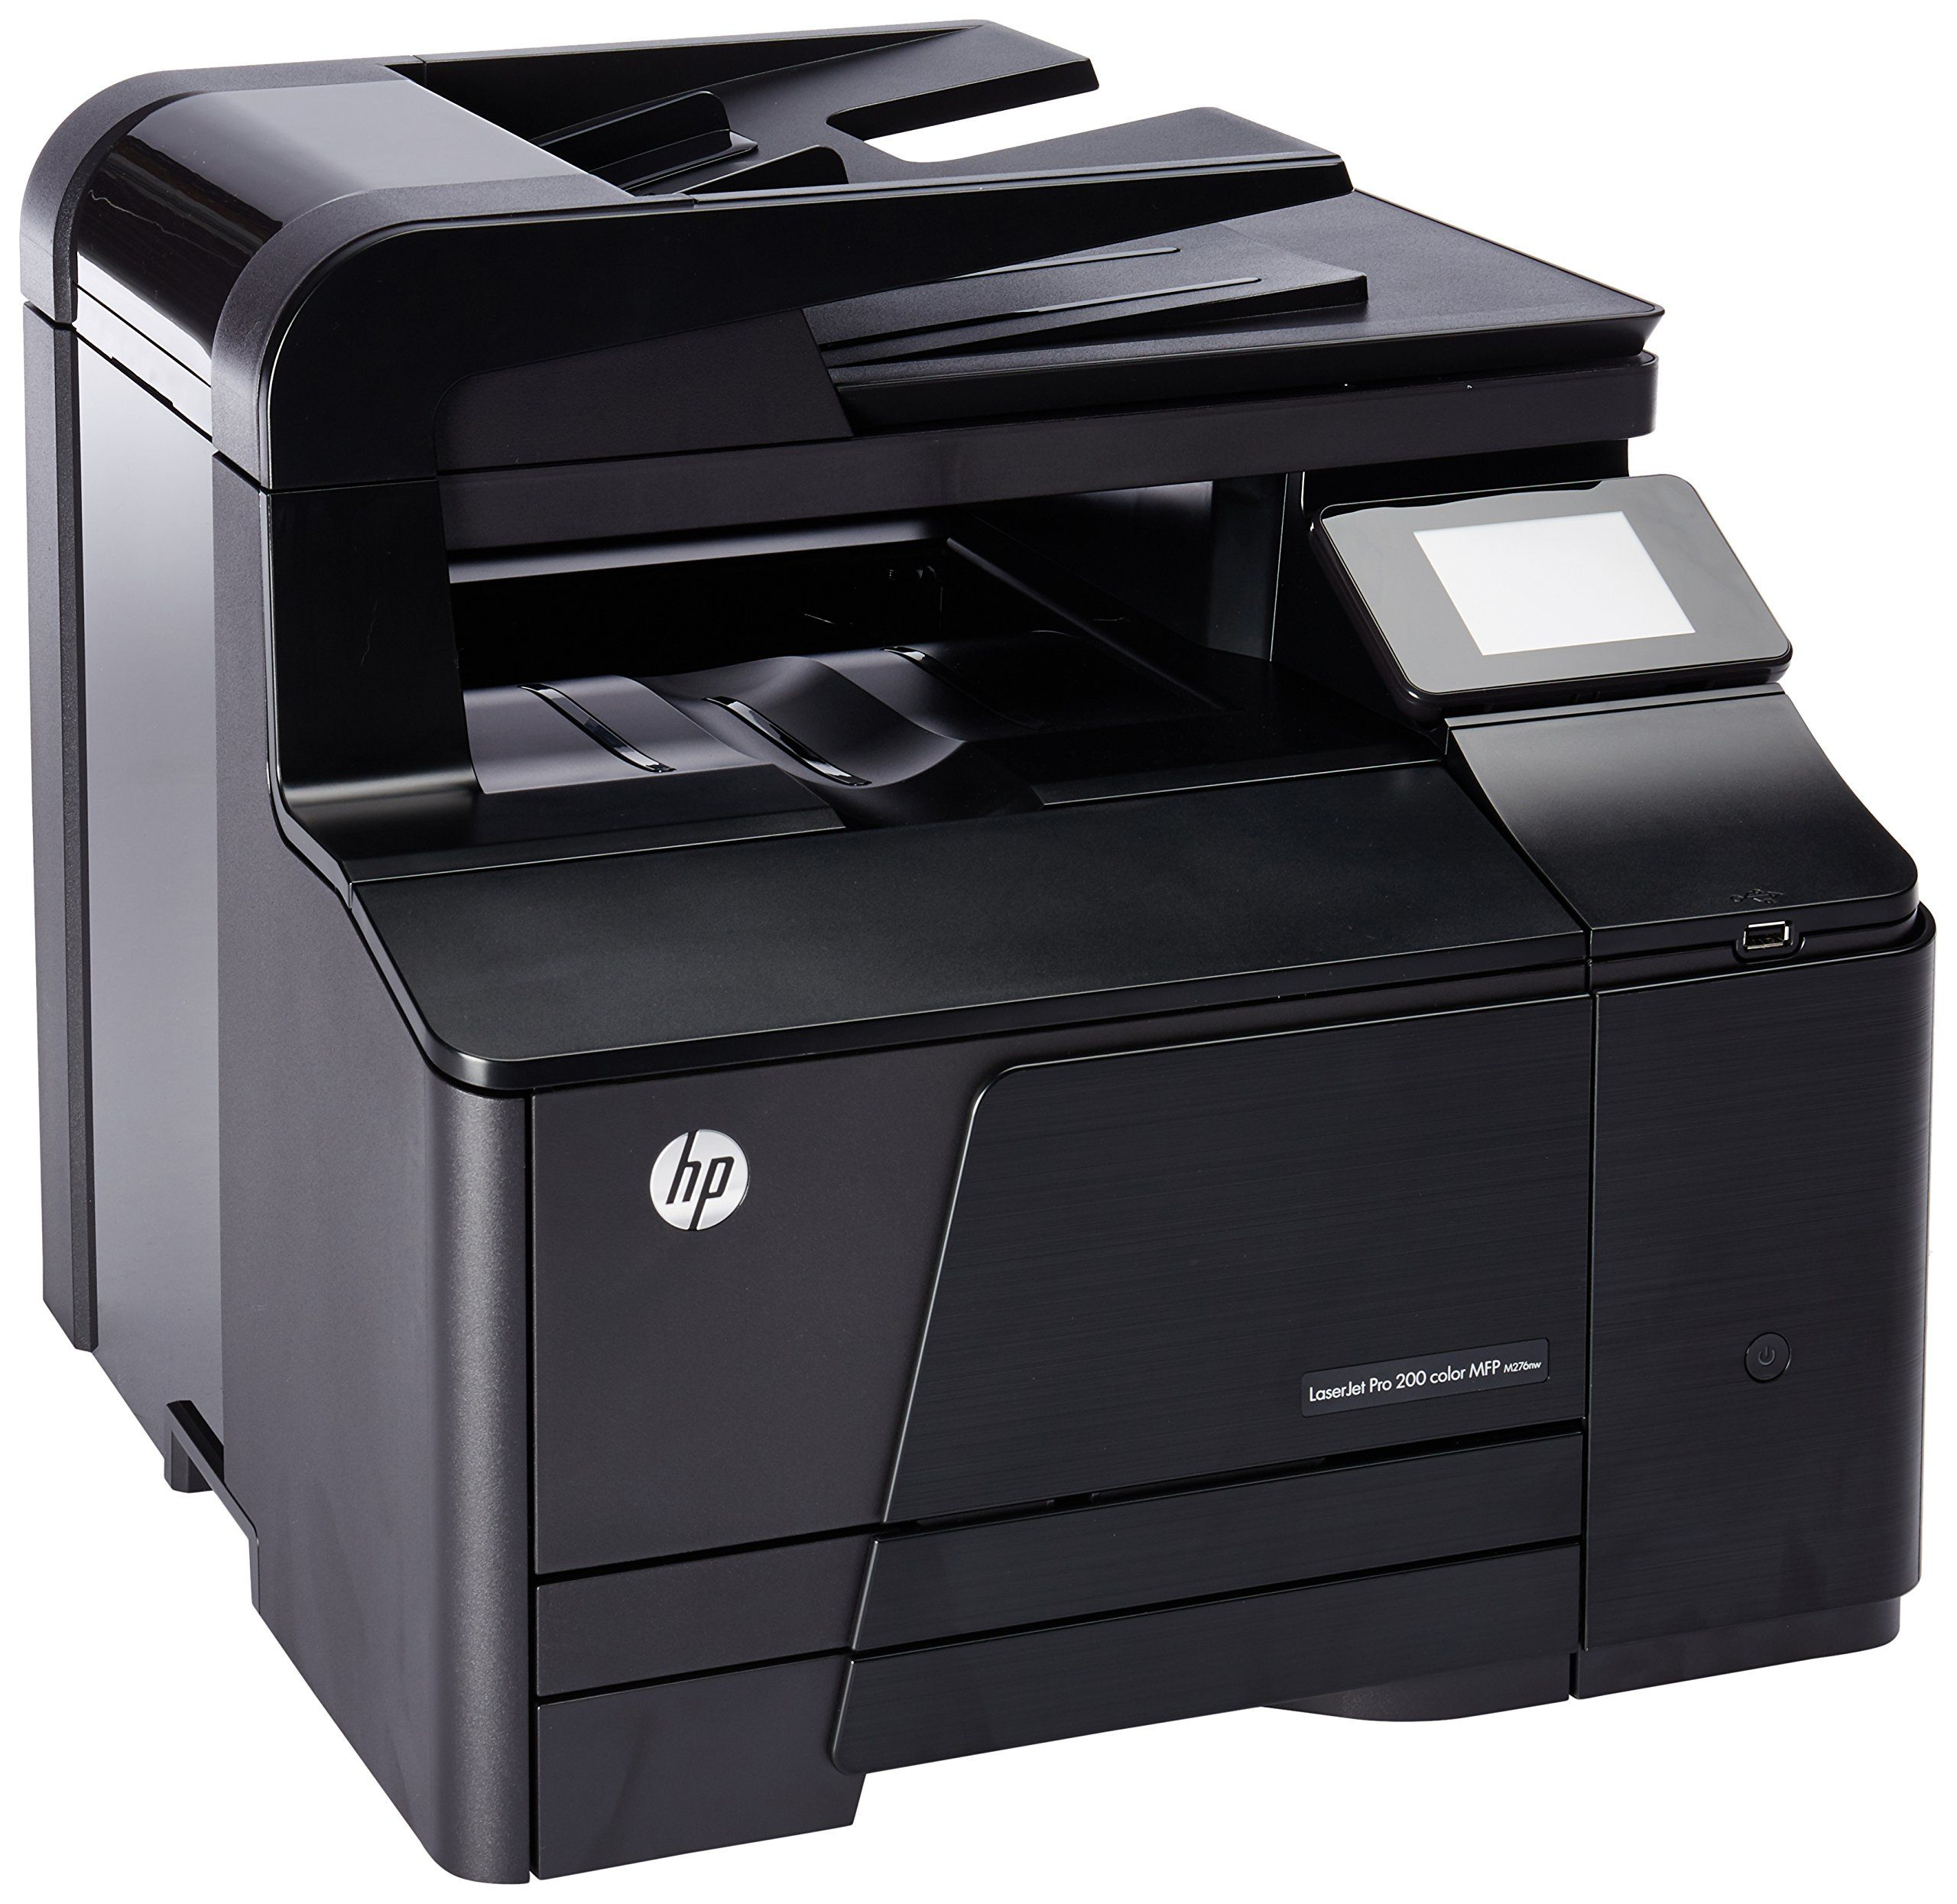 Hp Laserjet Pro 200 M276nw Allinone Color Printer Old Version Read More At The Image Link Affiliate Link Computerprint Printer Color Printer Photo Printer